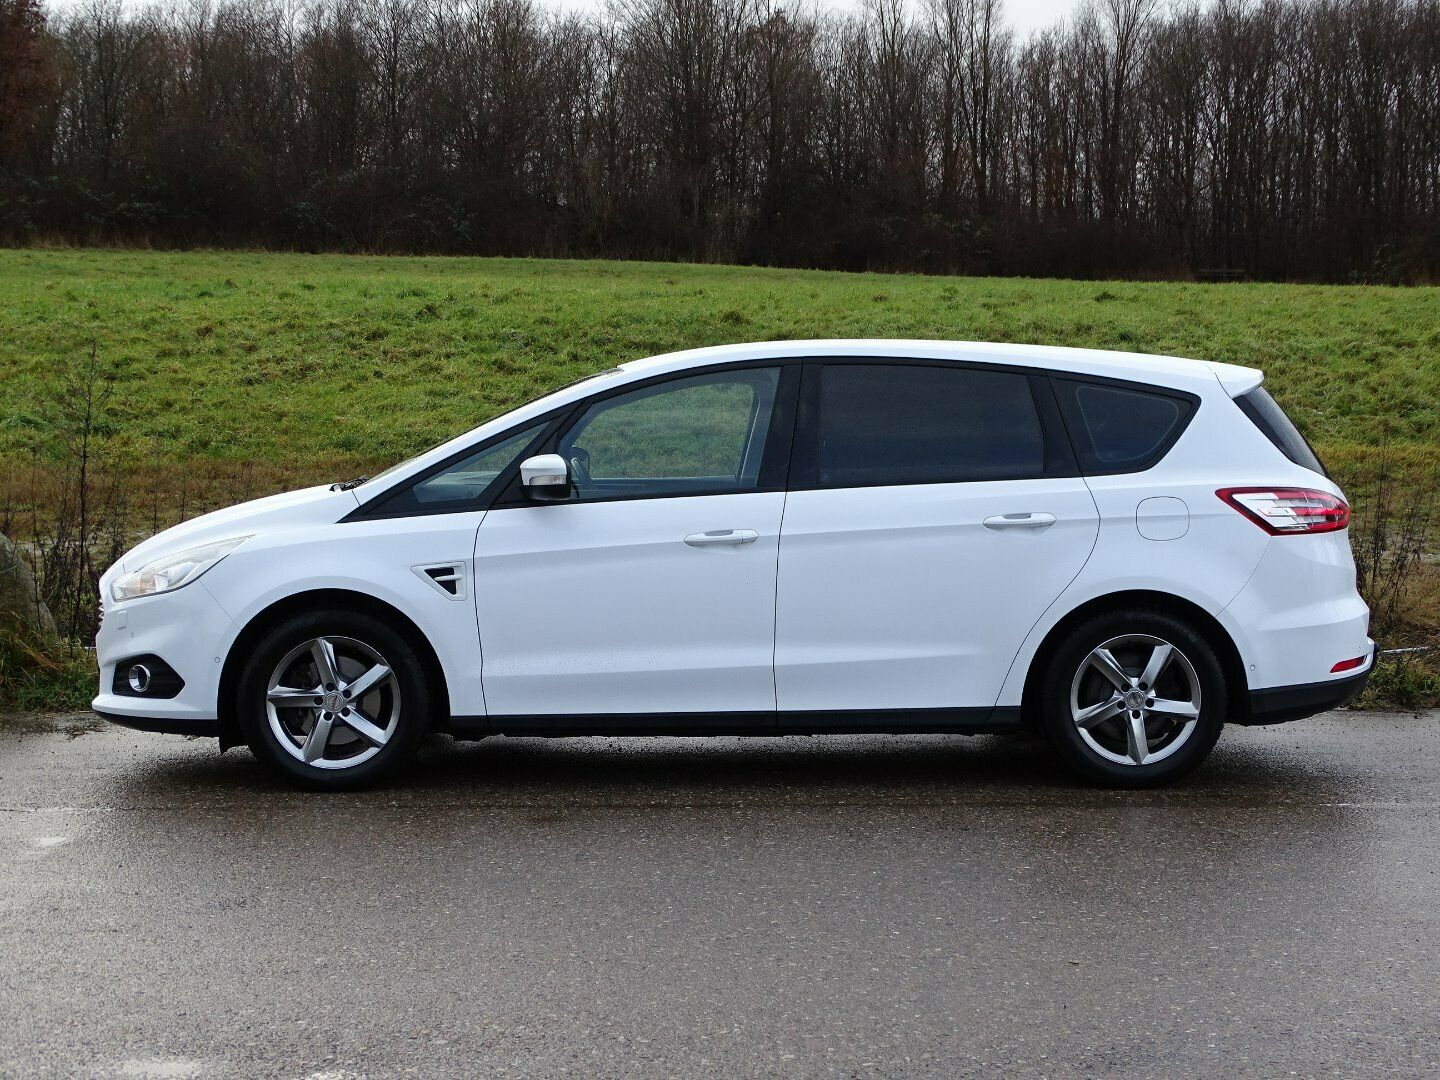 Ford S-MAX 2,0 TDCi 150 Trend aut. - billede 3